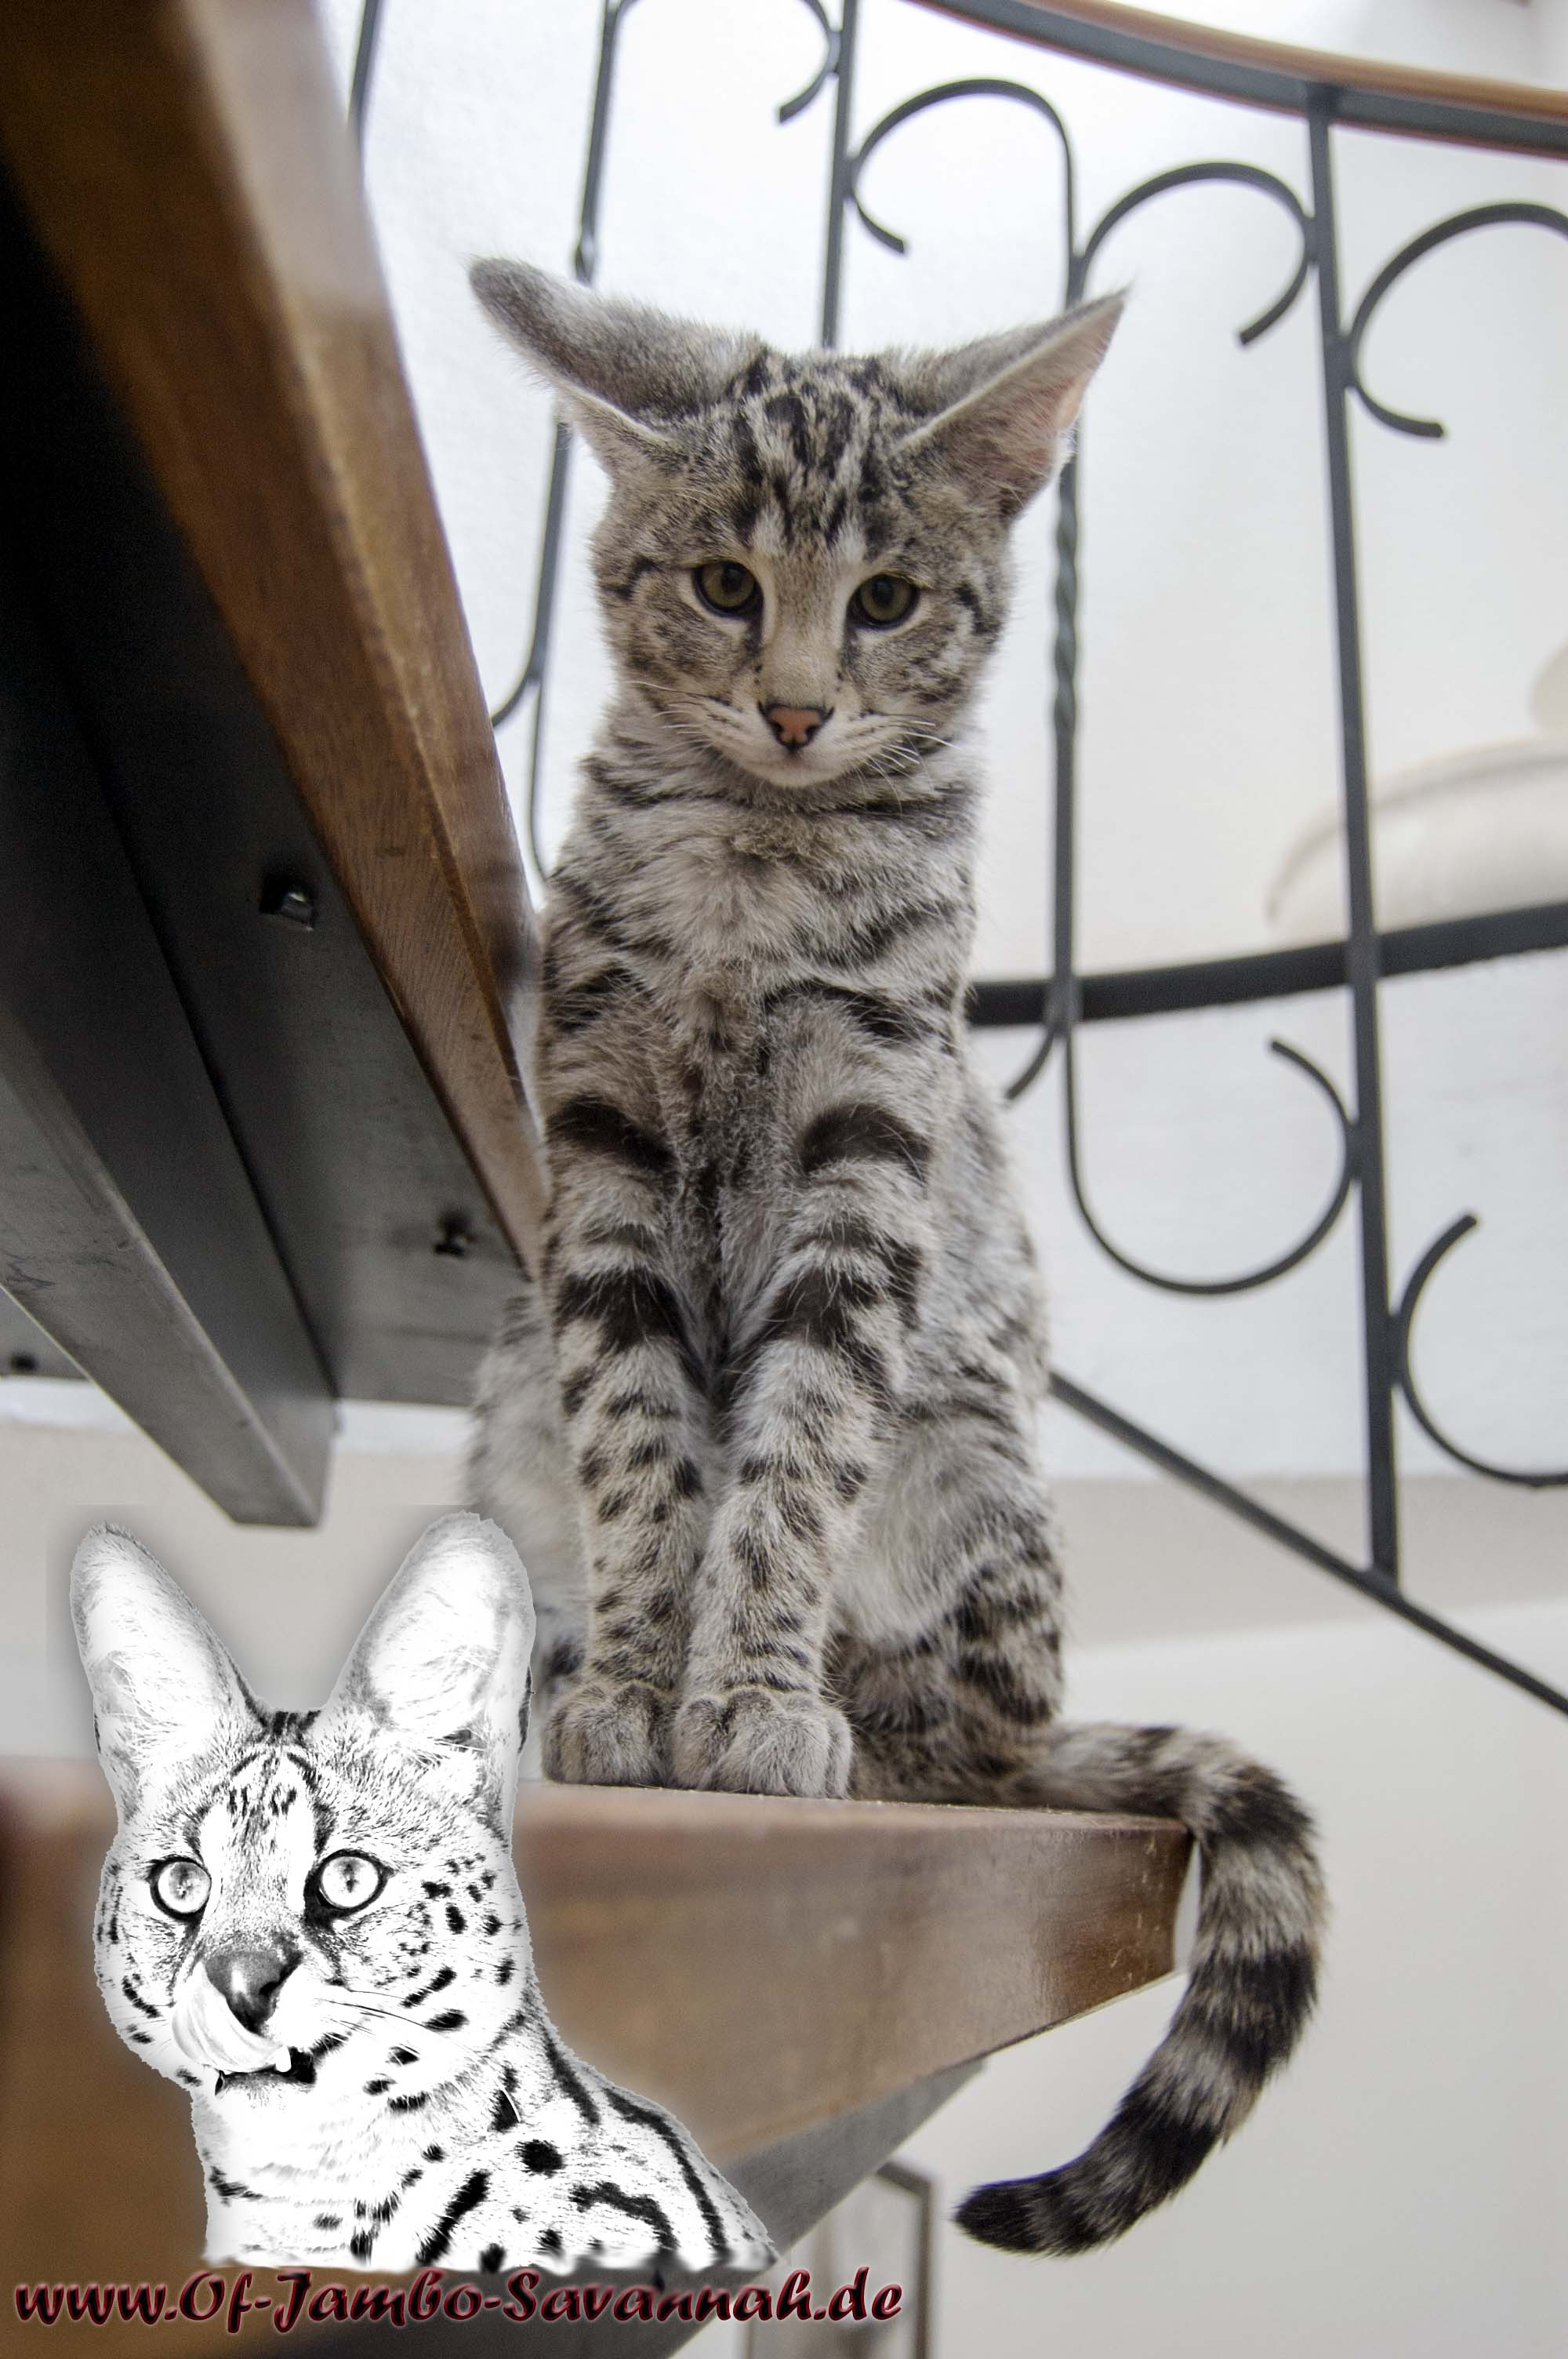 "In this picture you can see very beautiful the big ears of F1 Savannah ""Diamond of Jambo"" from the German Savannah breed ""Of Jambo Savannah Cats"""